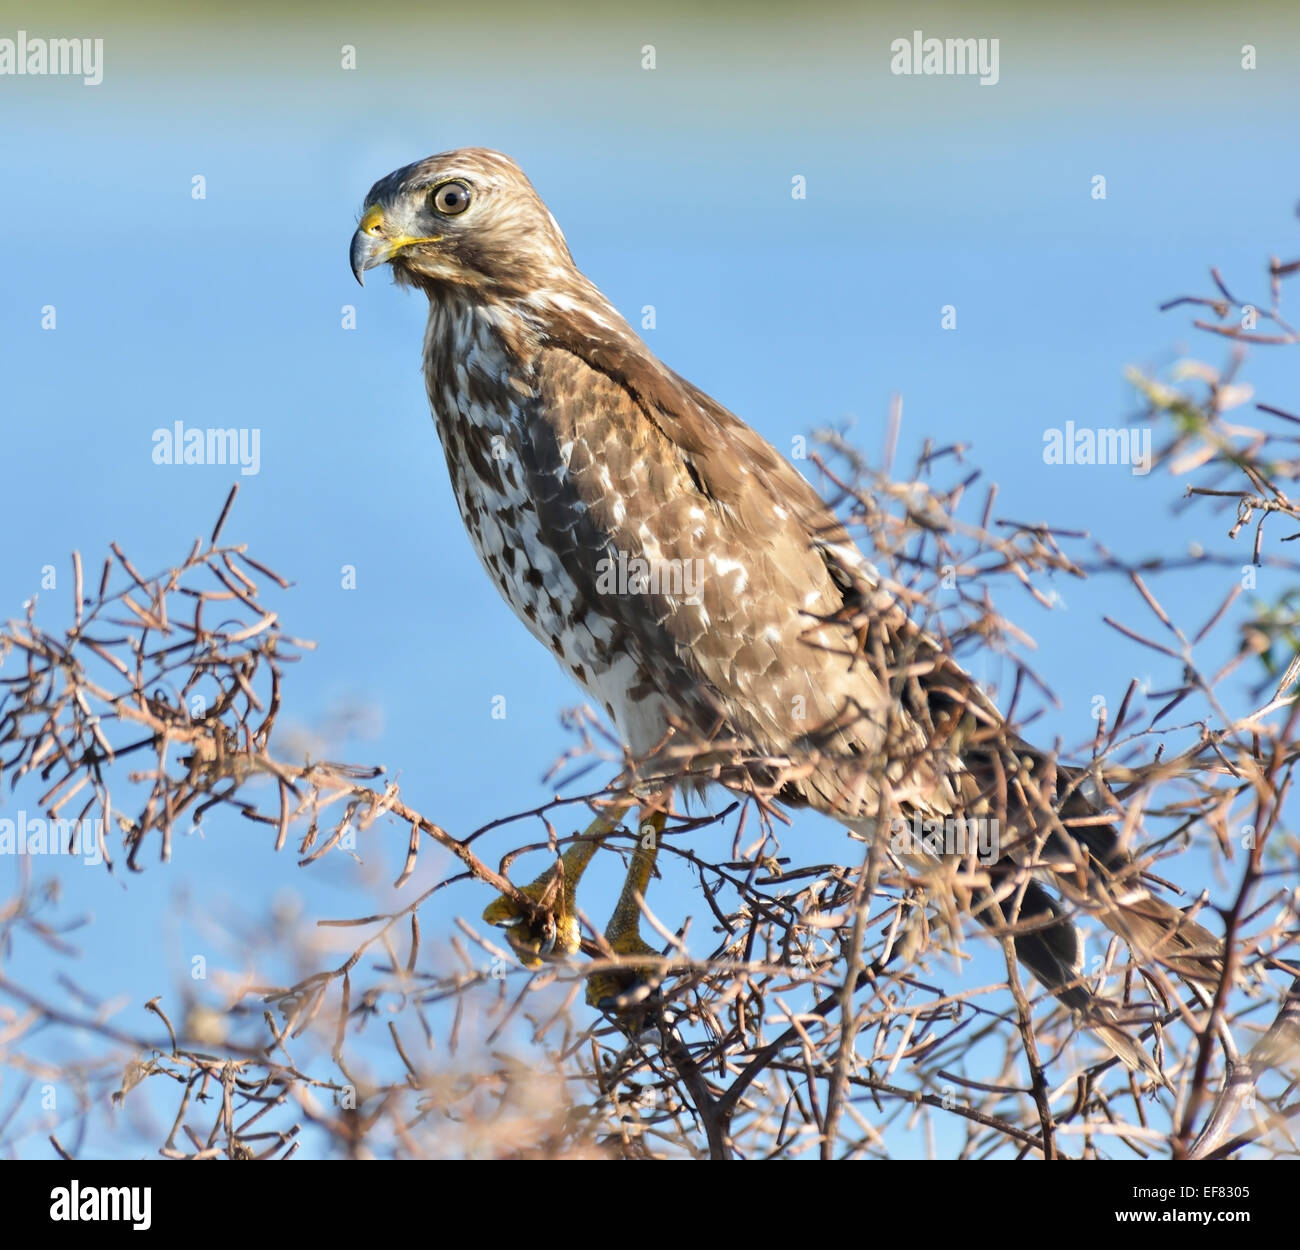 Sparrowhawk Perching On A Bush Branch - Stock Image